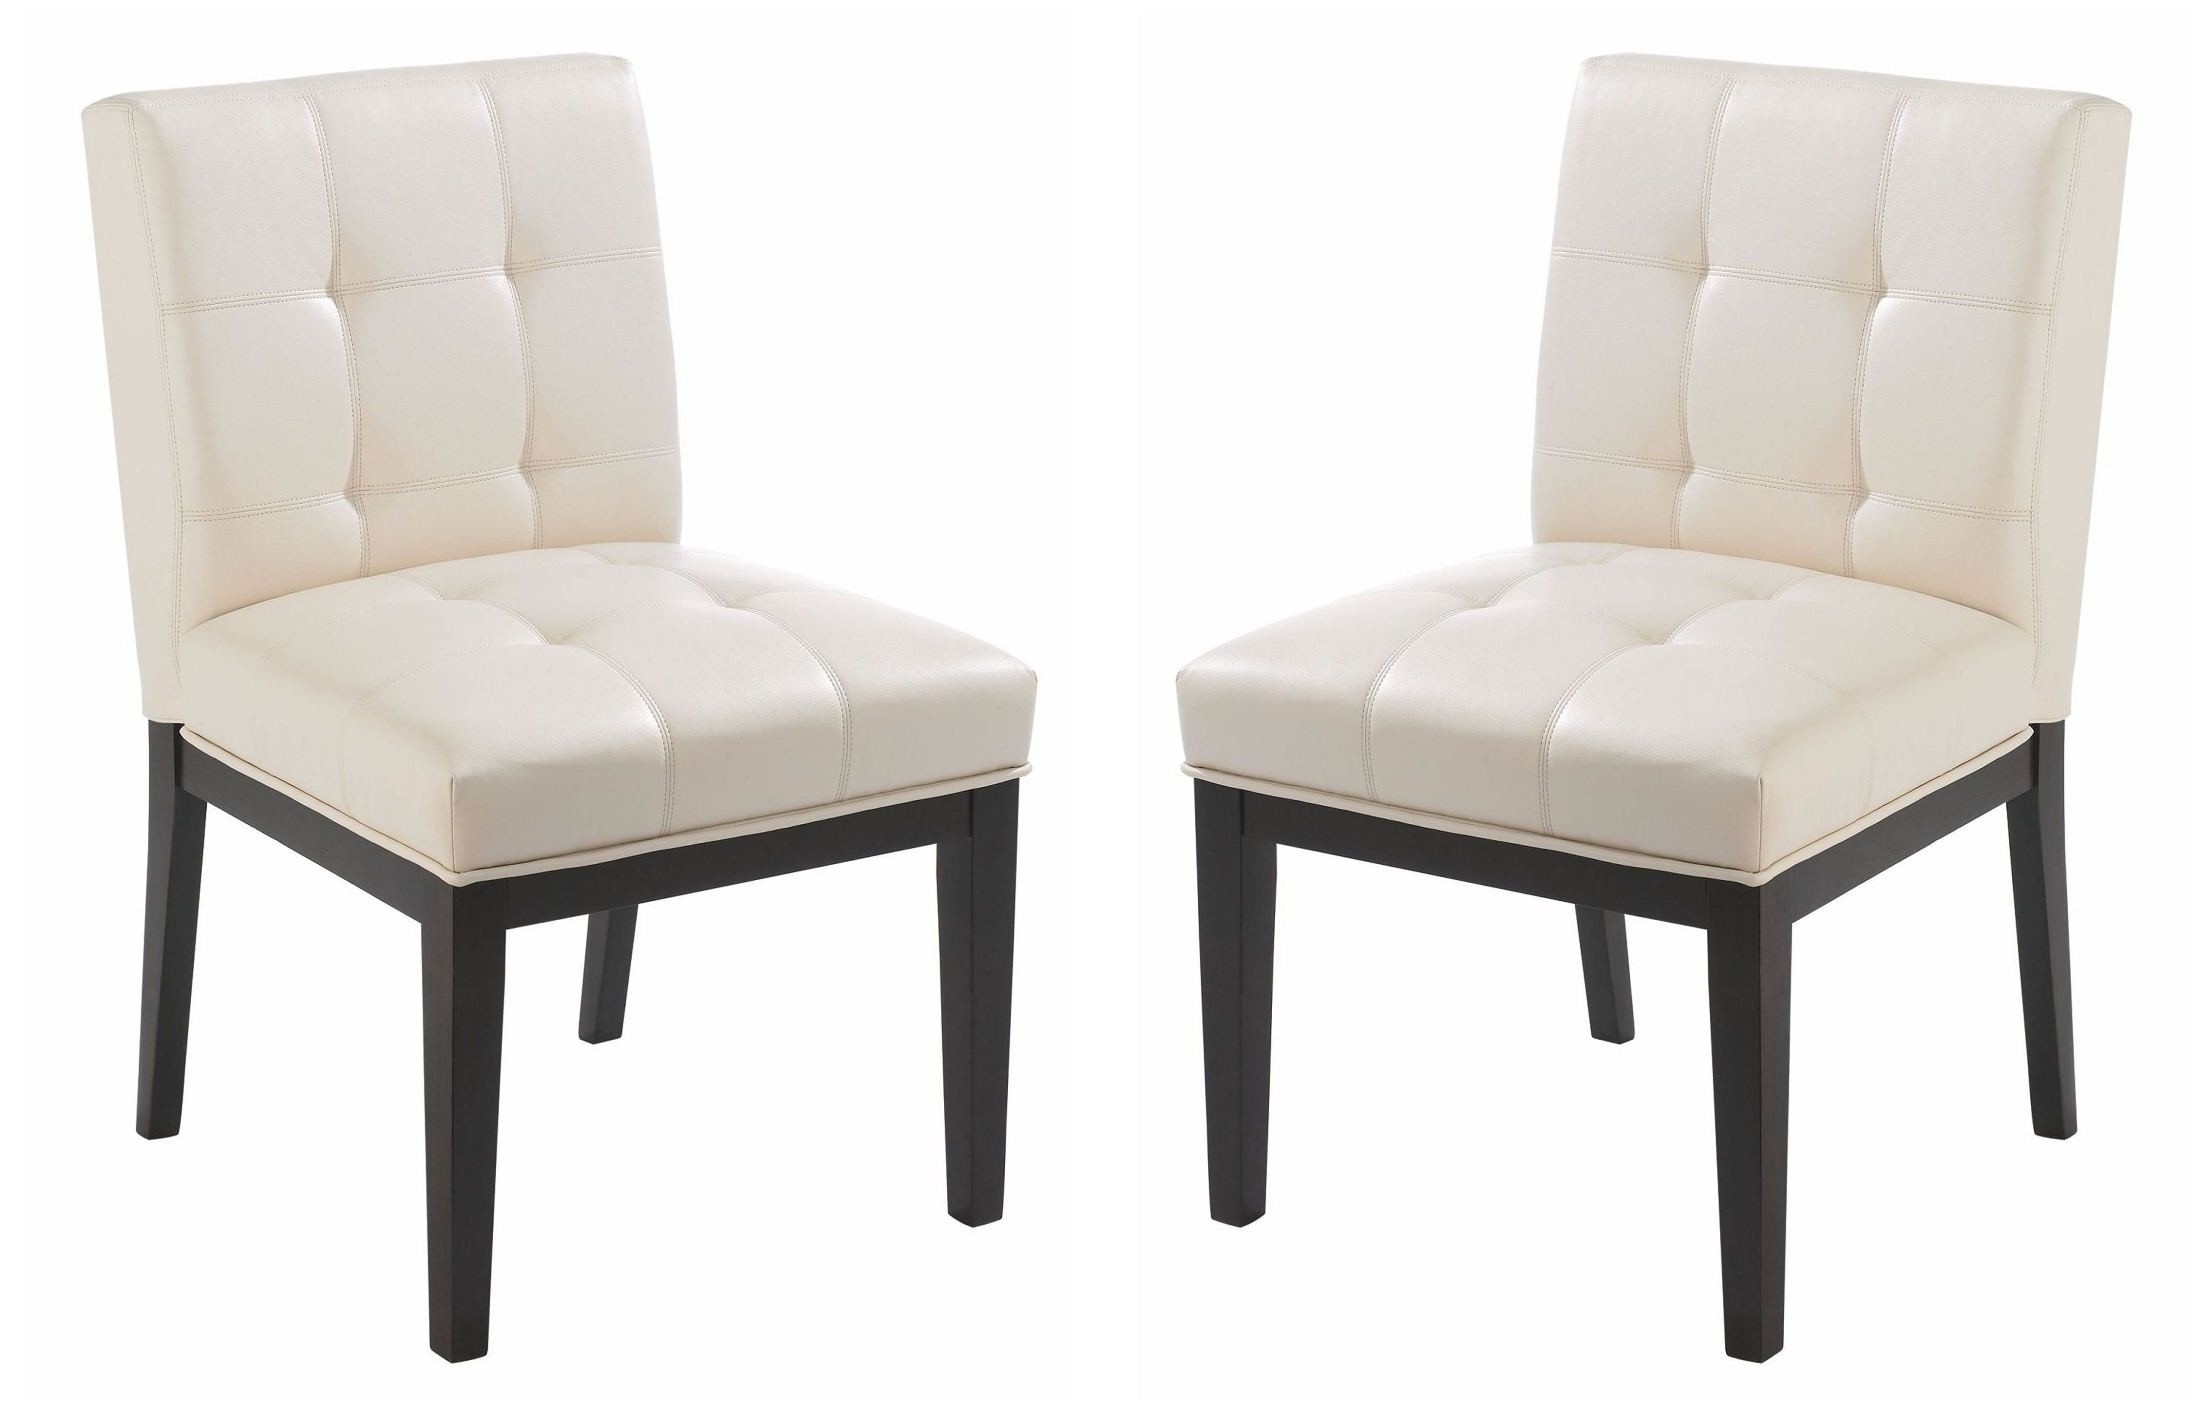 Felicia Cream Faux Leather Dining Chair Set Of 2 From